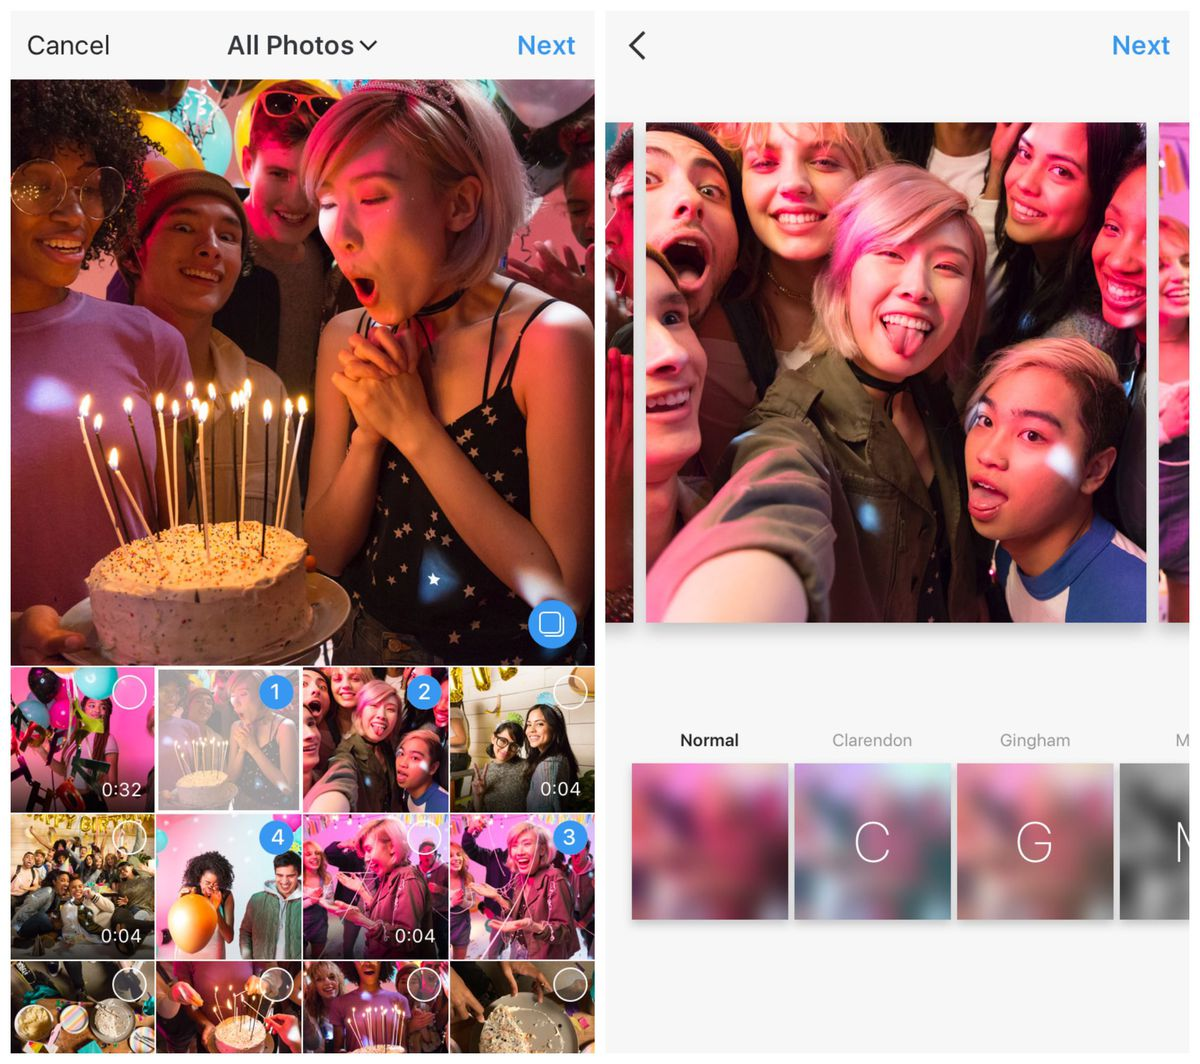 Instagram Now Lets You Add Up to 10 Photos and Videos in a Single Post | Social Media Today